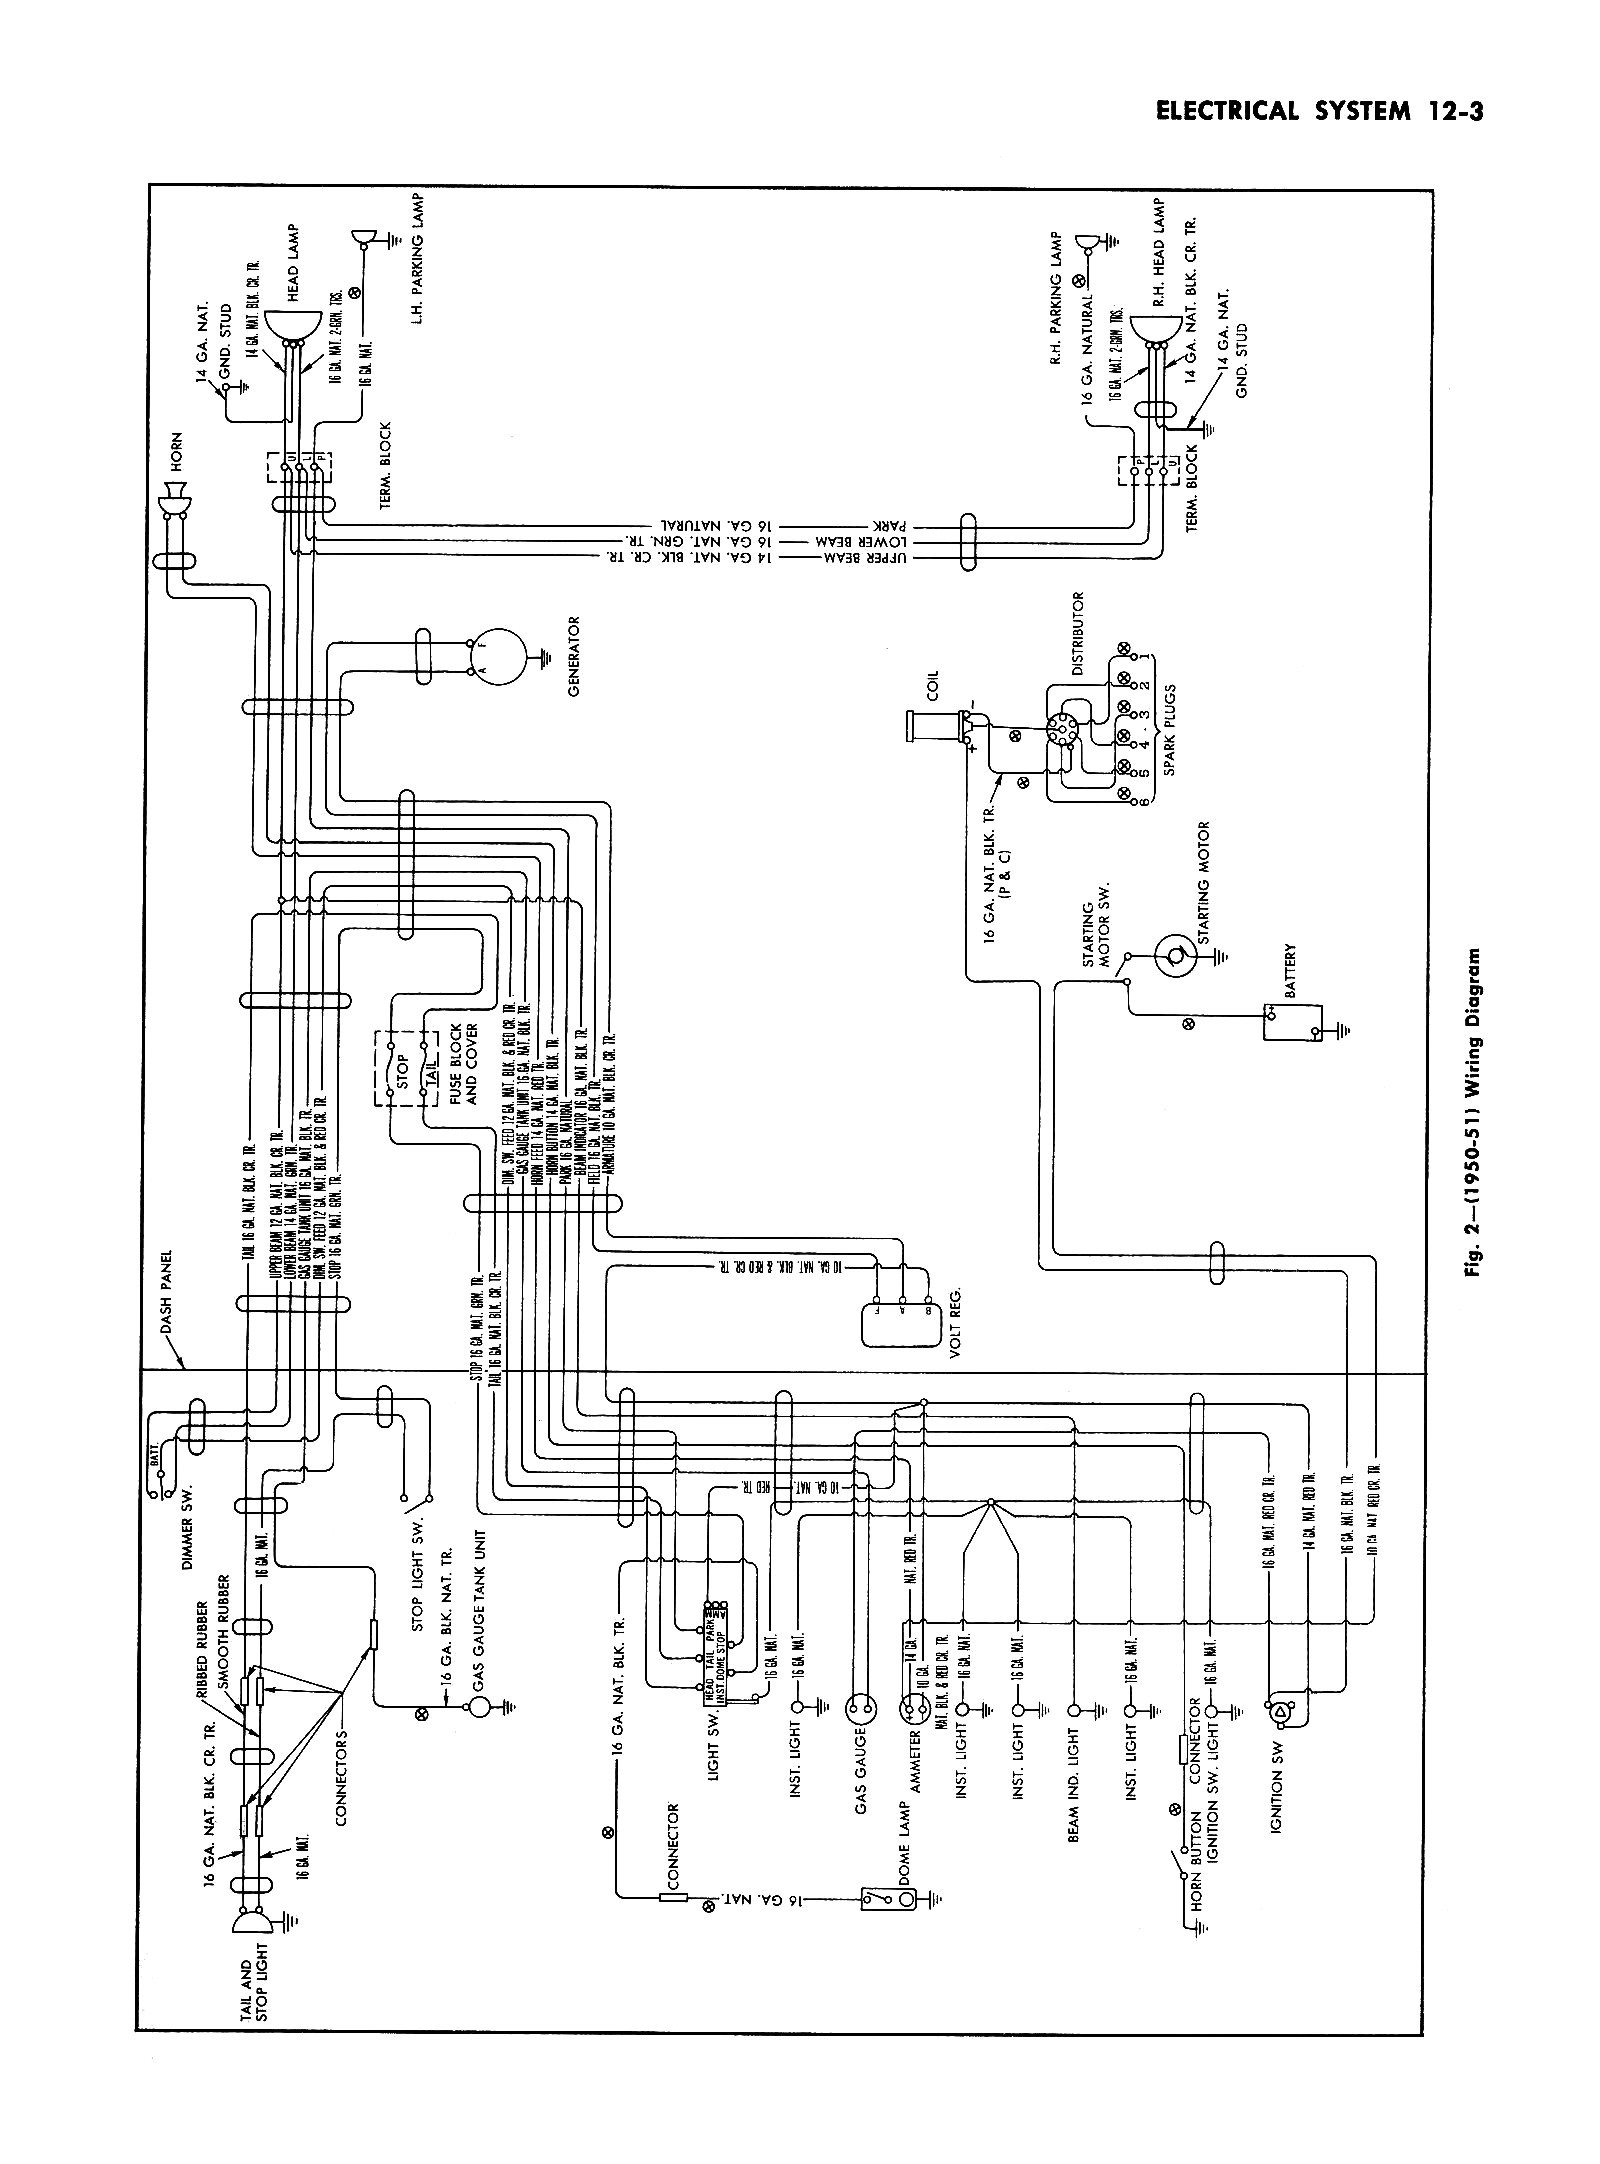 Chevy Transmission Wiring Diagram